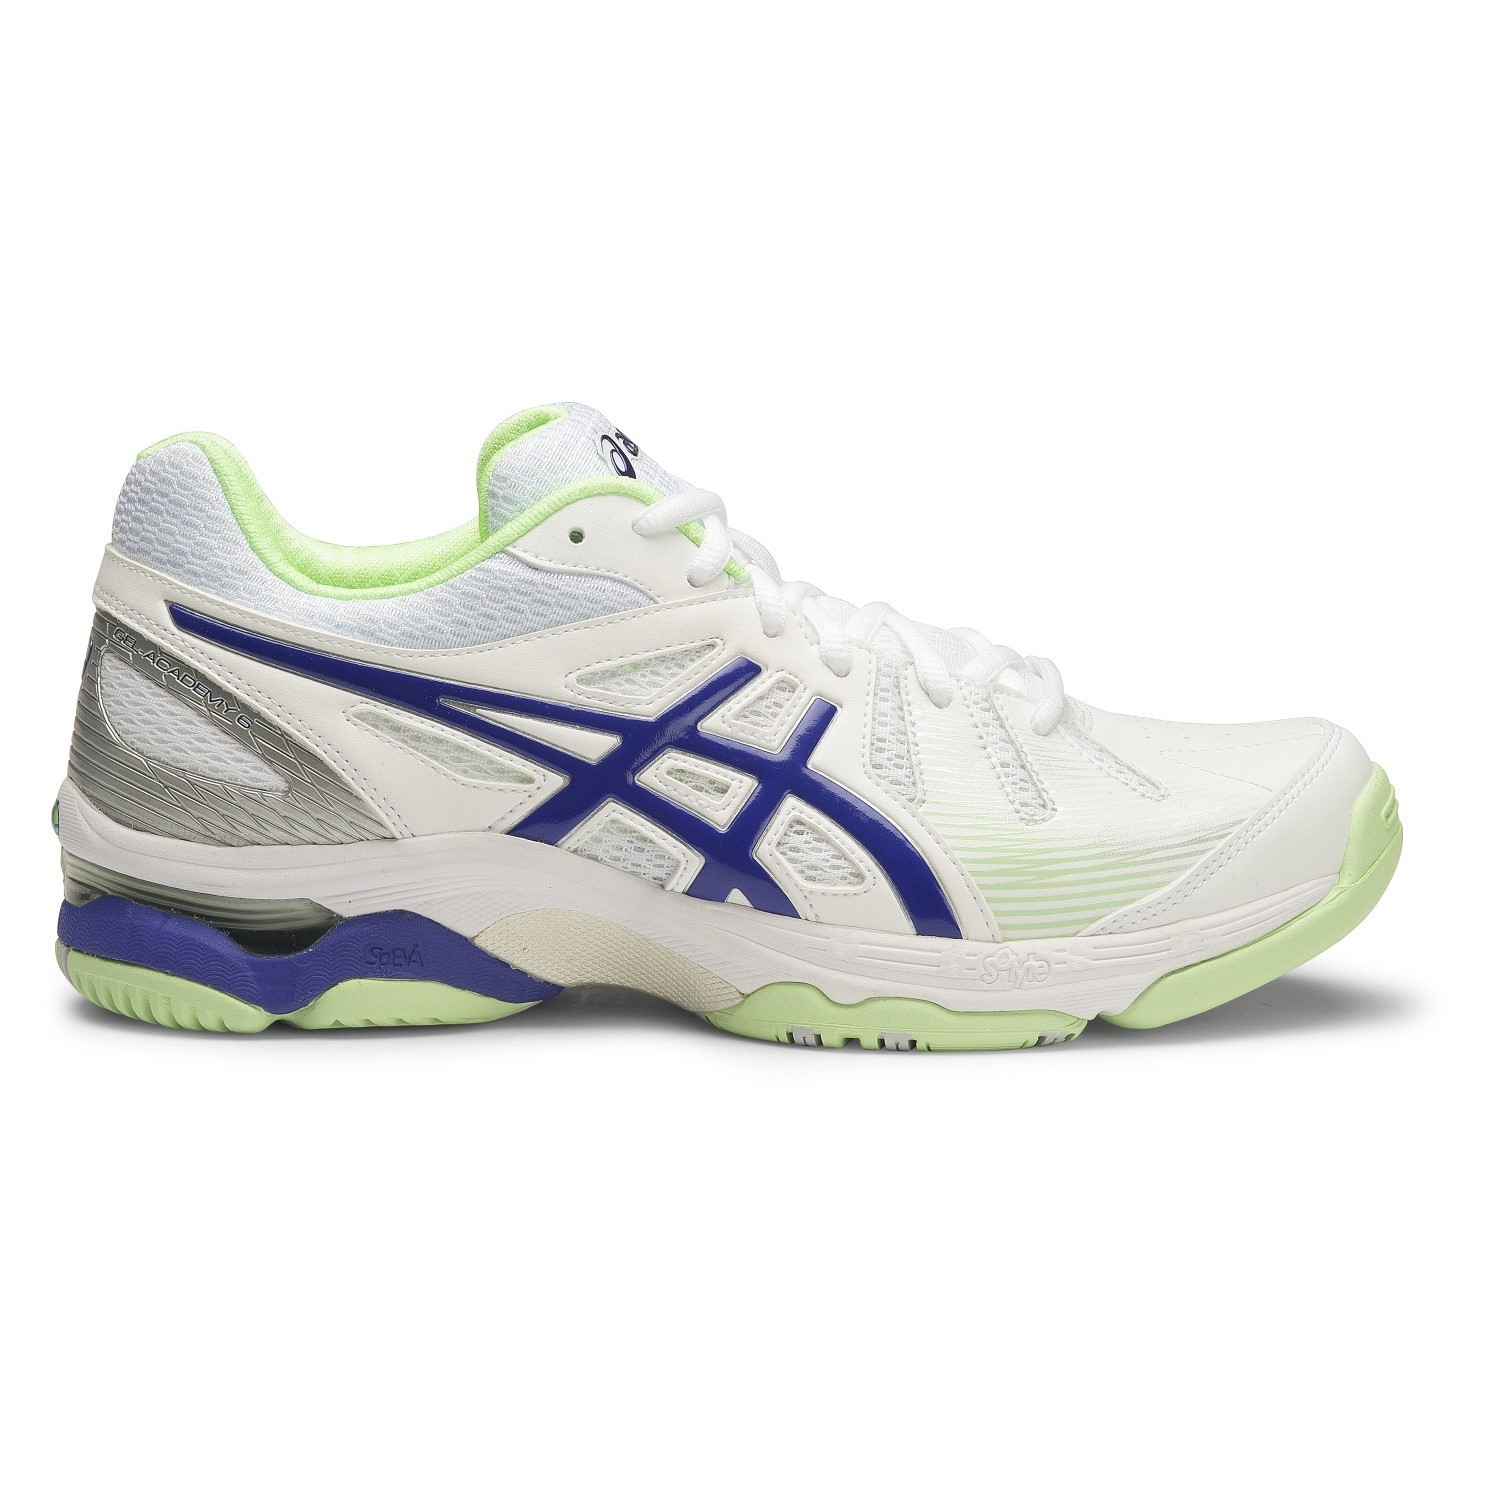 tennis shoes asics australia